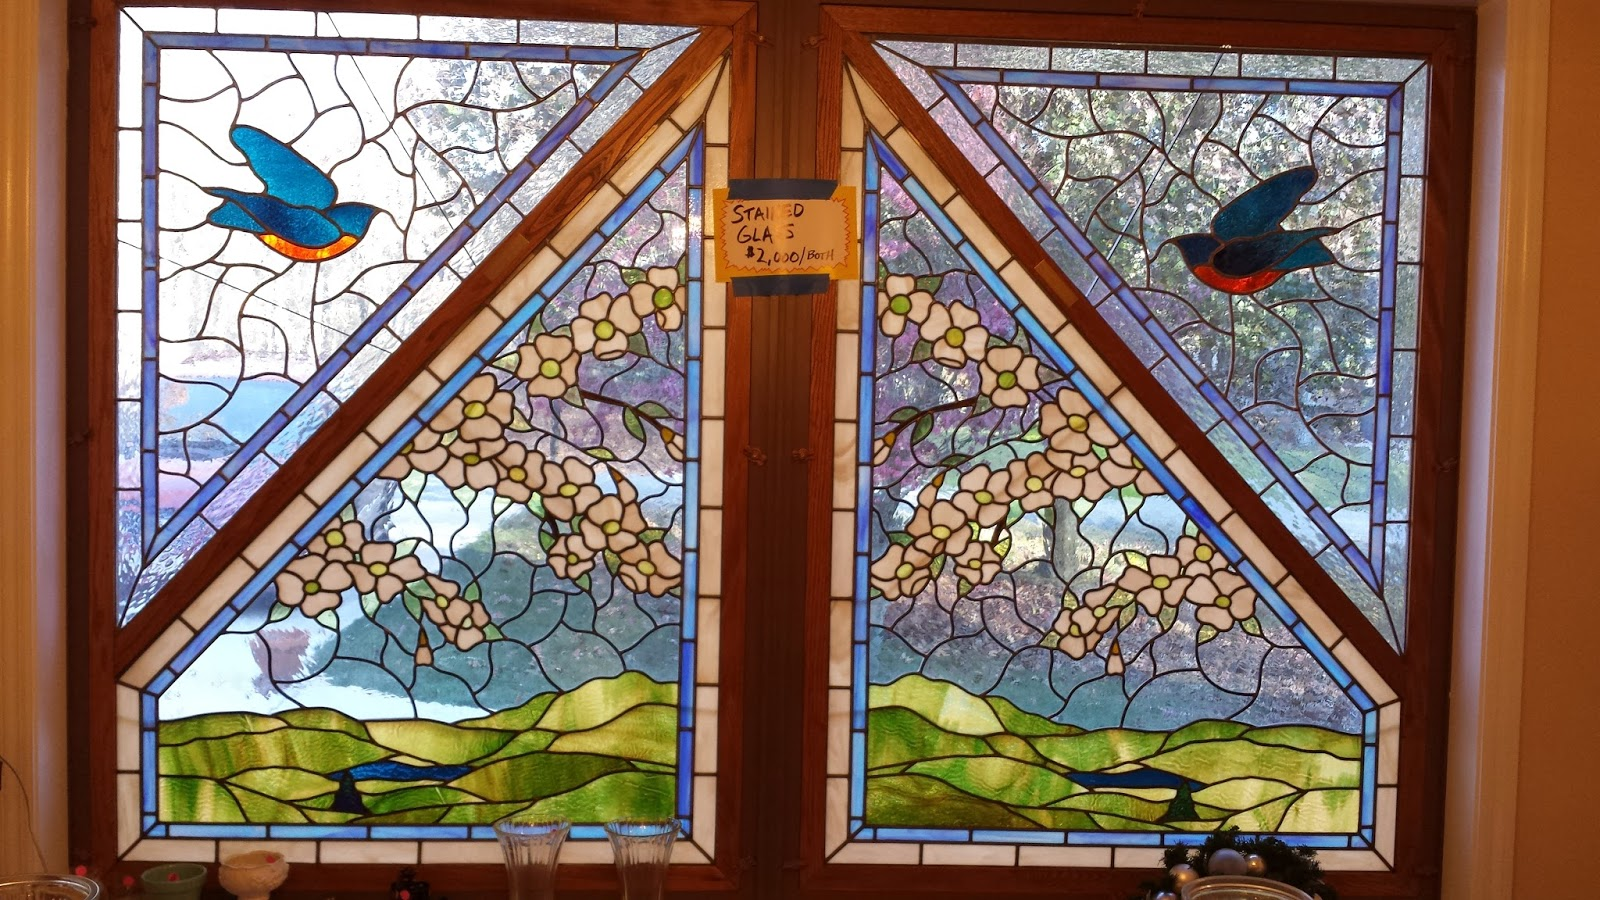 Mays Sales Gorgeous Large Stained Glass Windows For Sale